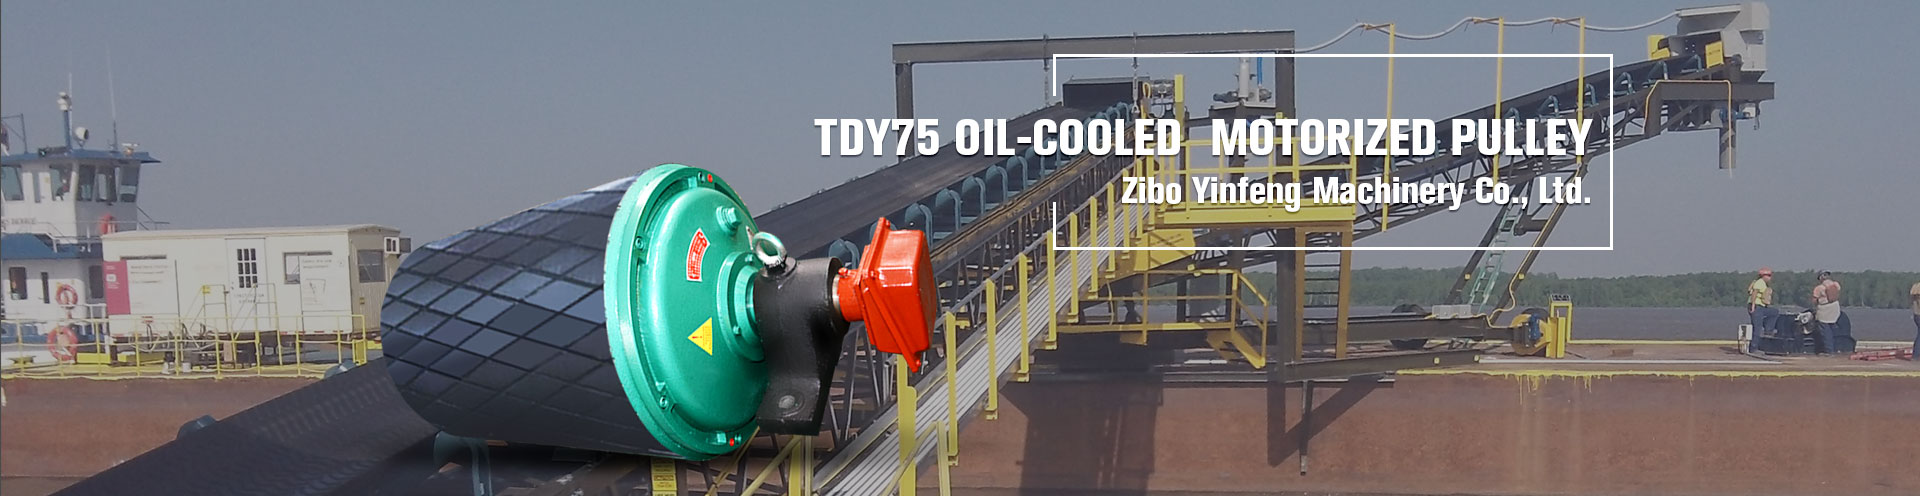 TDY75 Type Oil-cooled Motorized Drum(Motorized Pulleys)